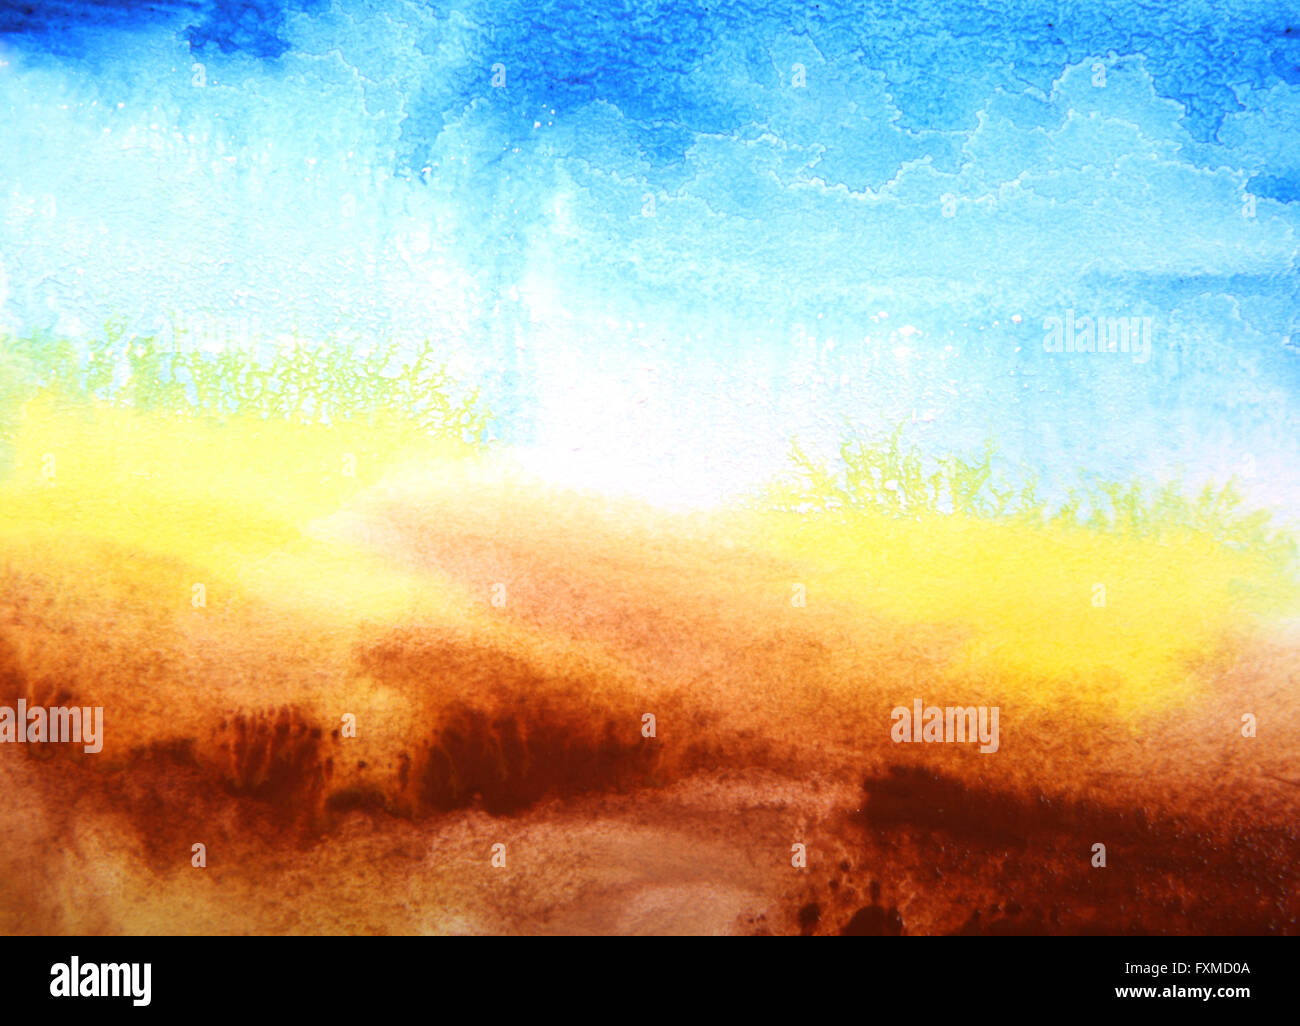 abstract watercolor textured background summer themed landscape